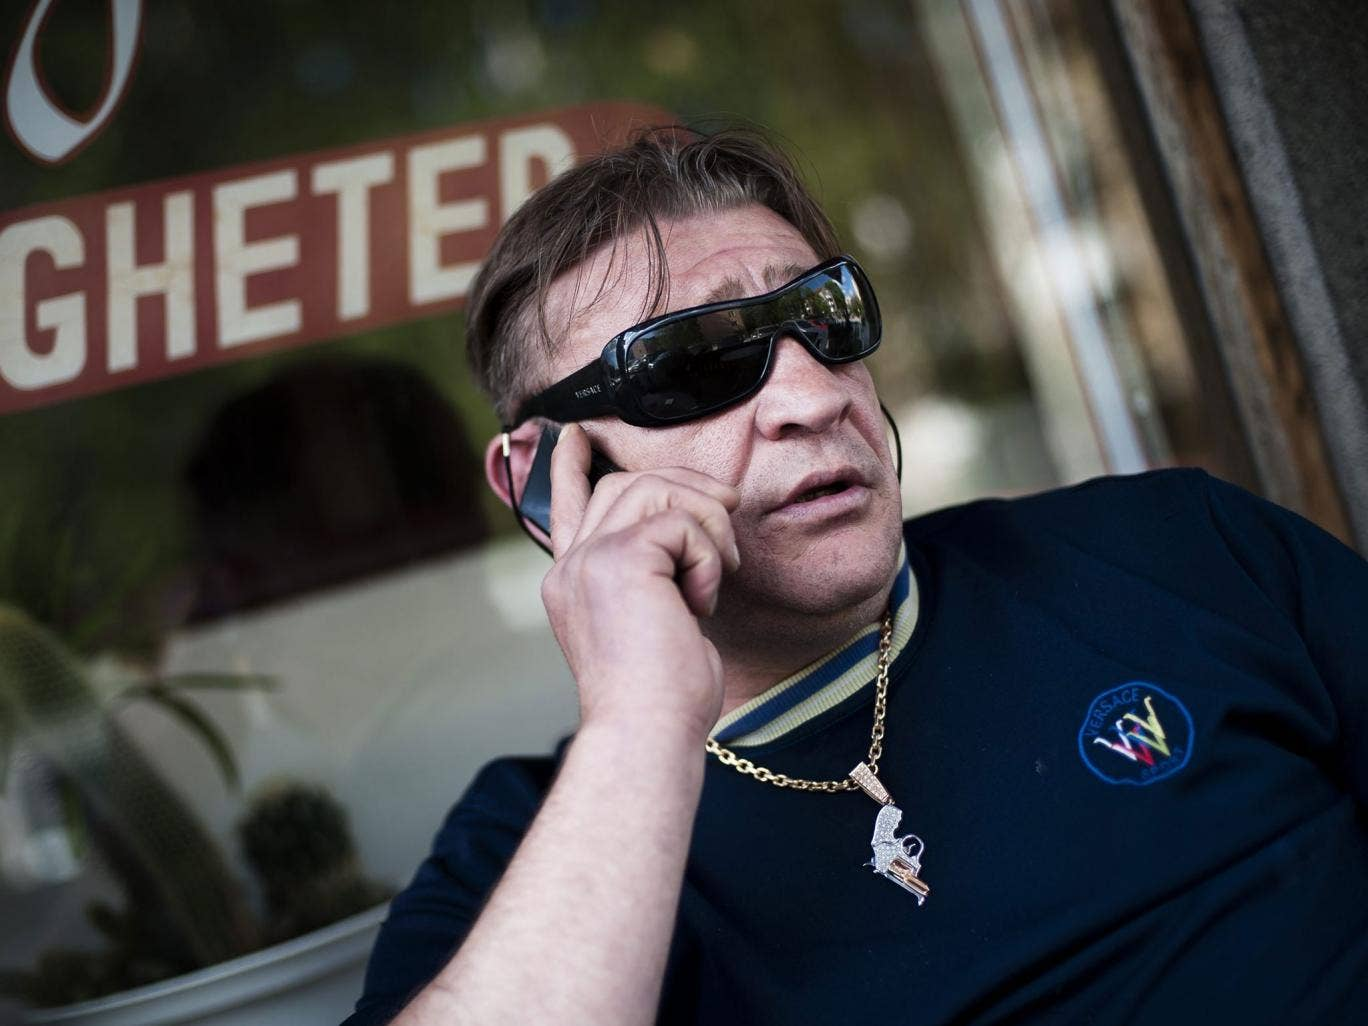 Sex club owner Mille Markovic is believed to have made many enemies